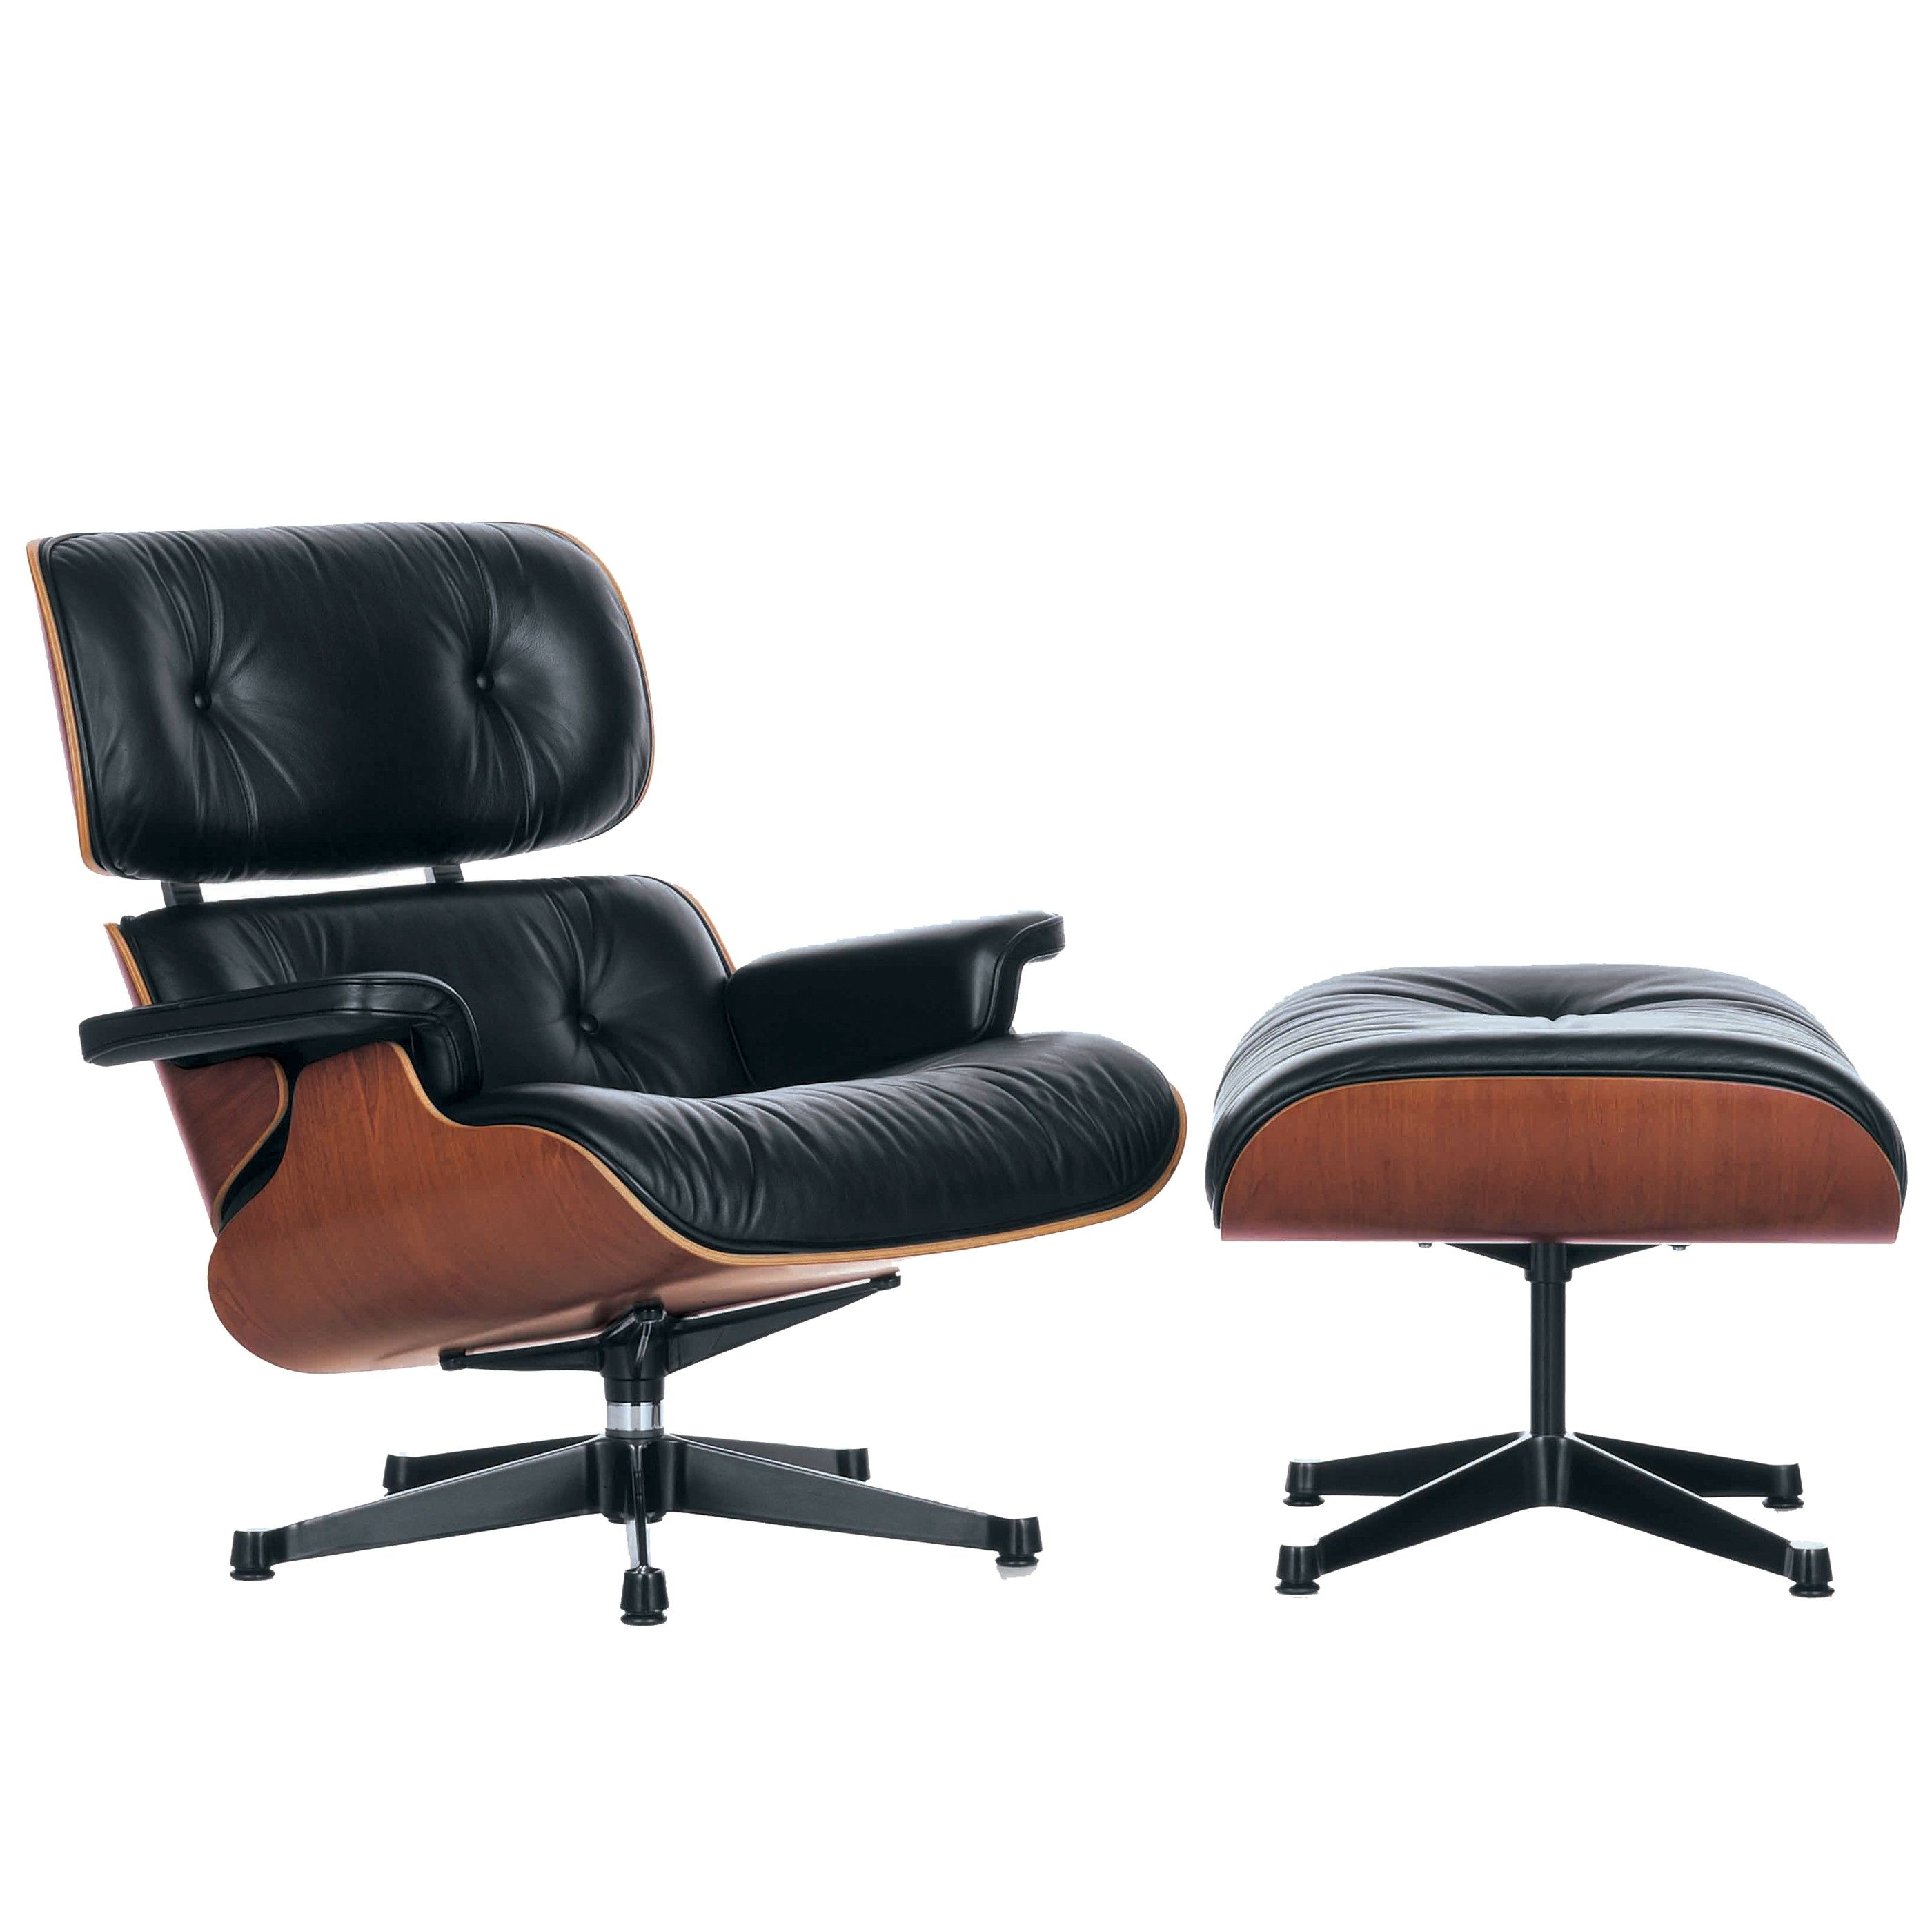 vitra eames lounge chair met ottoman fauteuil klassieke afmetingen flinders verzendt gratis. Black Bedroom Furniture Sets. Home Design Ideas